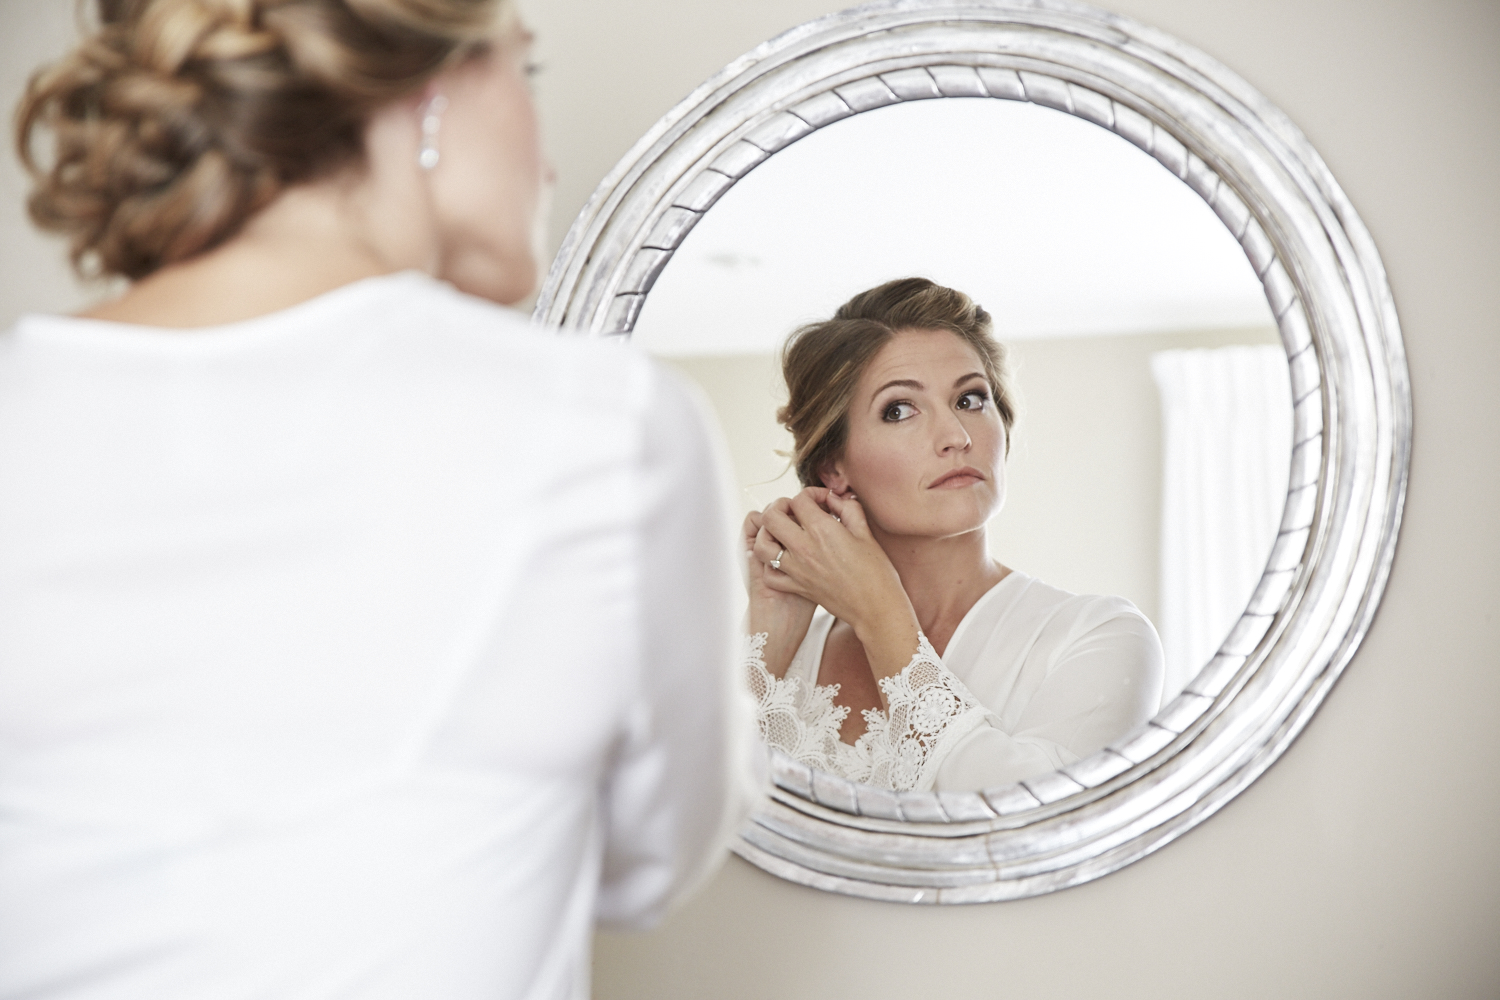 Bride looks in silver mirror